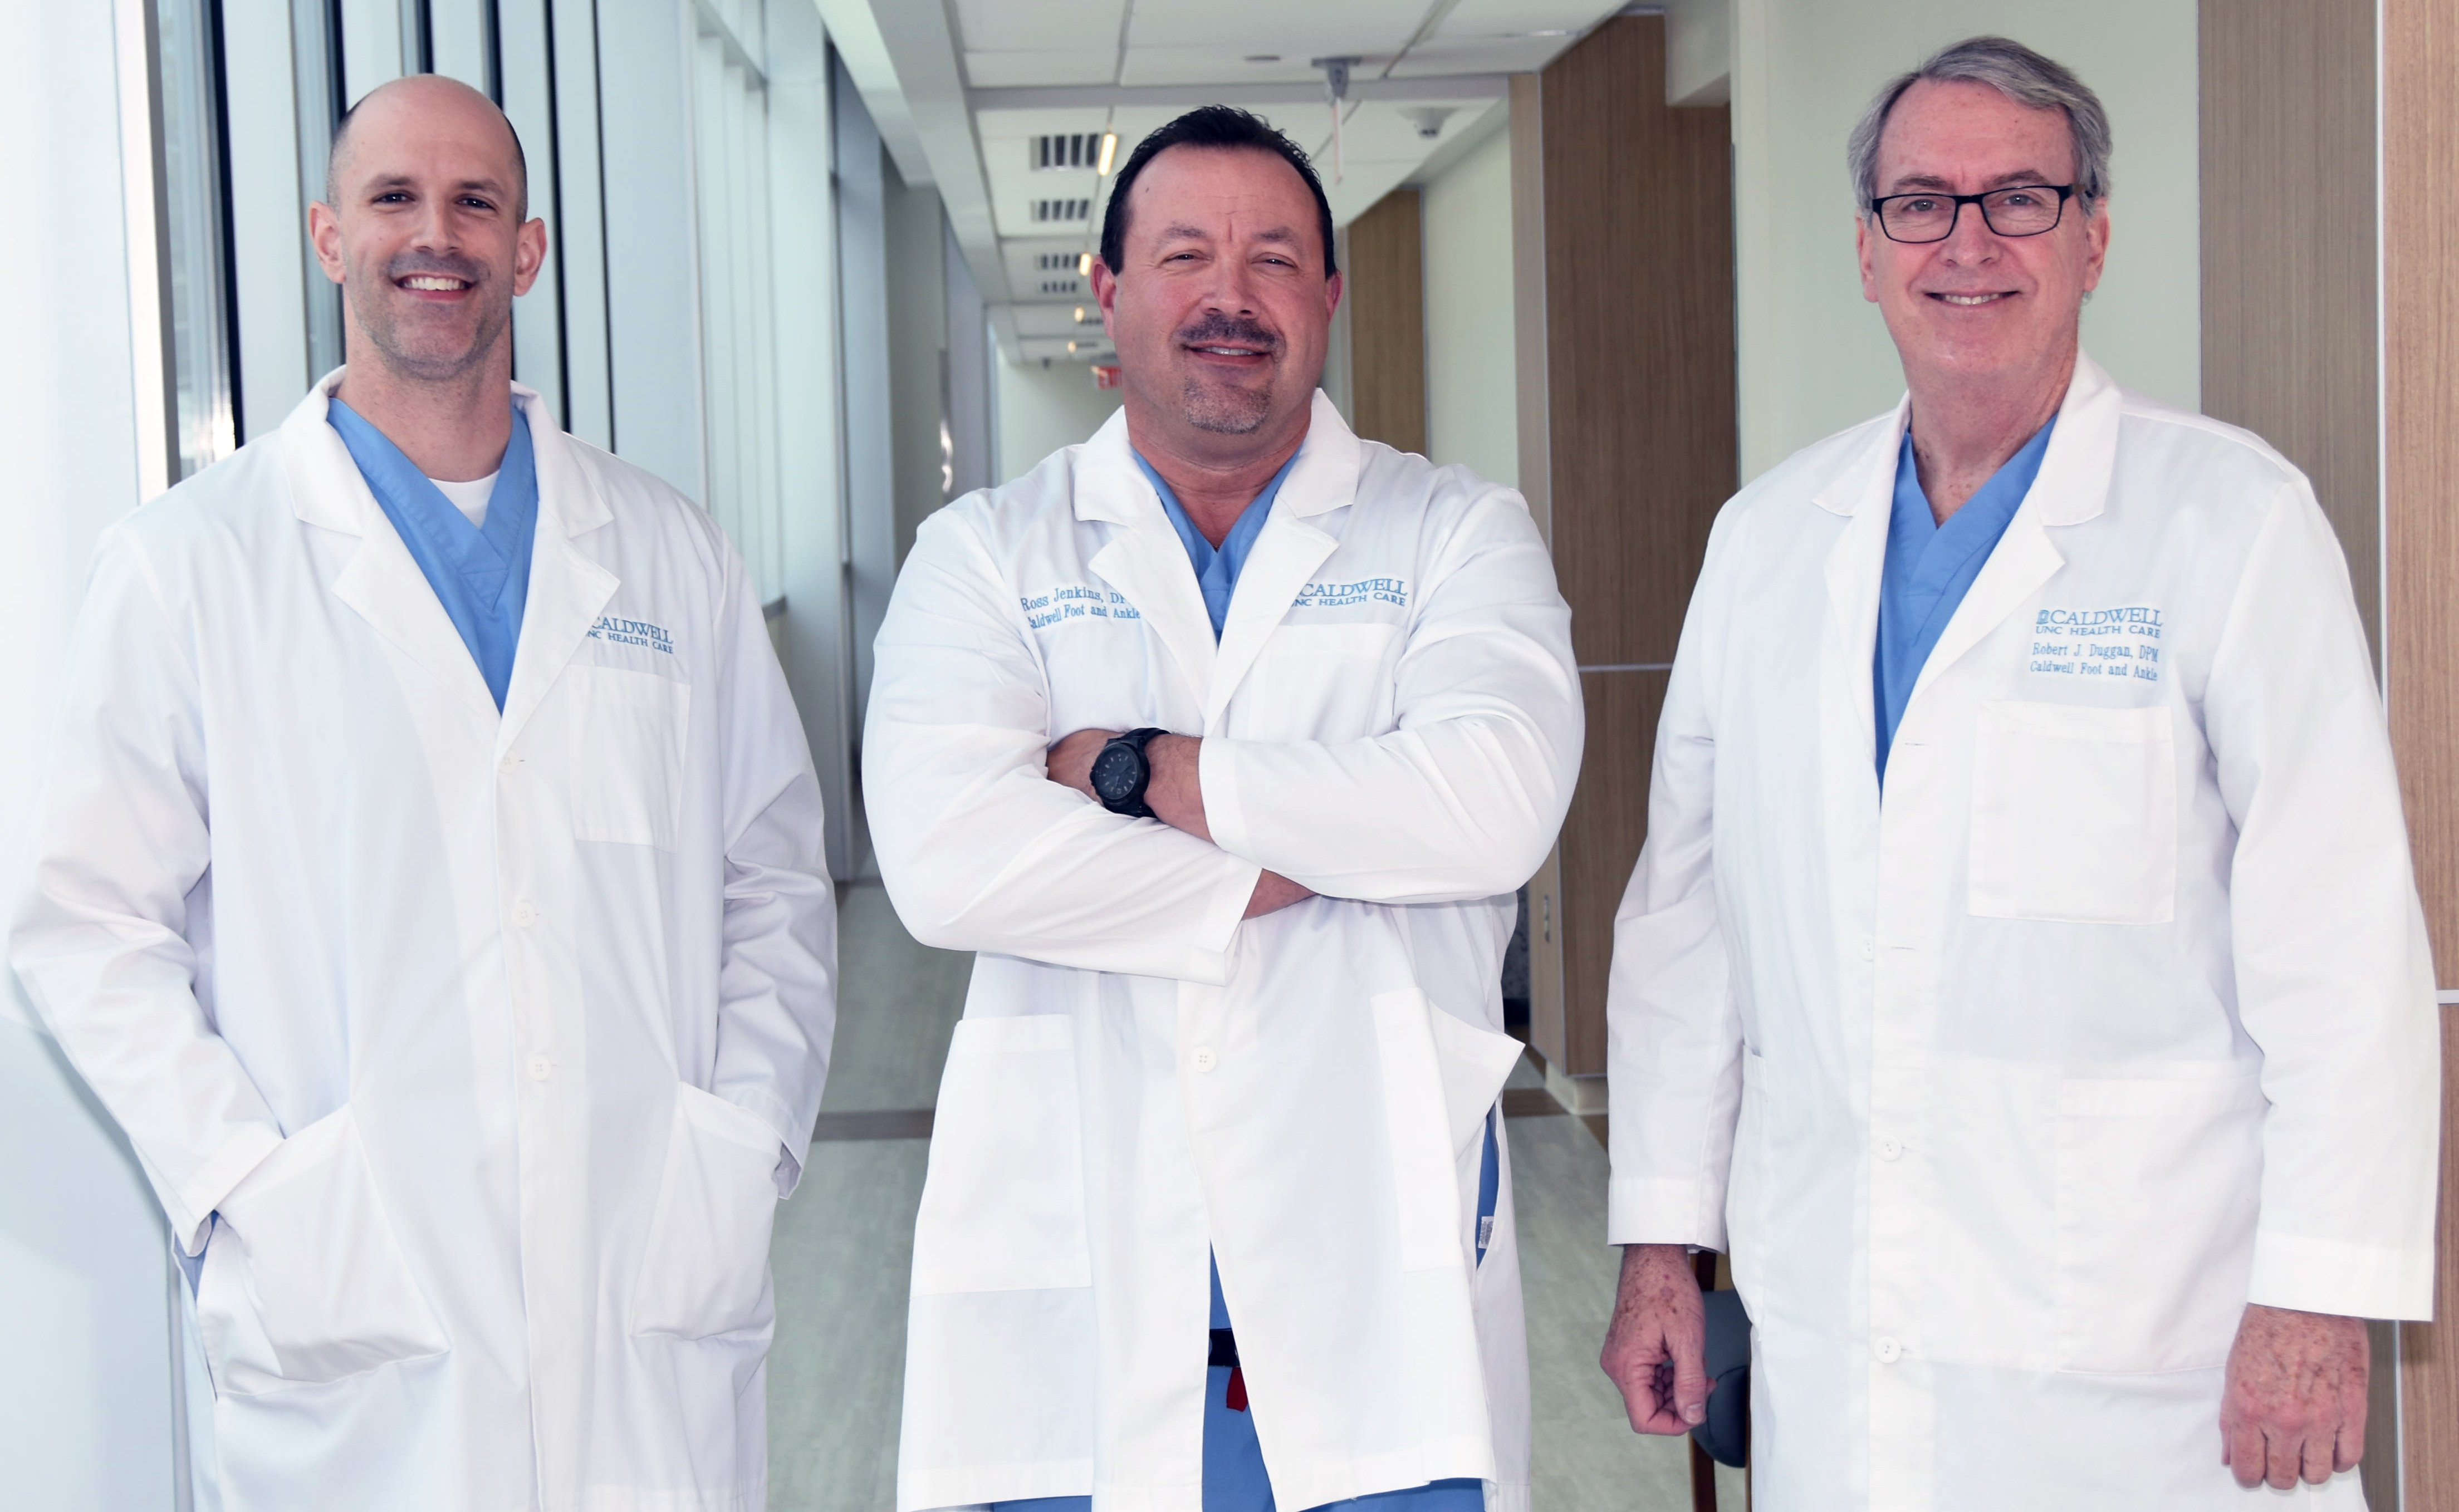 Dr.'s Justin W. Walker, Philip R. Ross, Robert J. Duggan